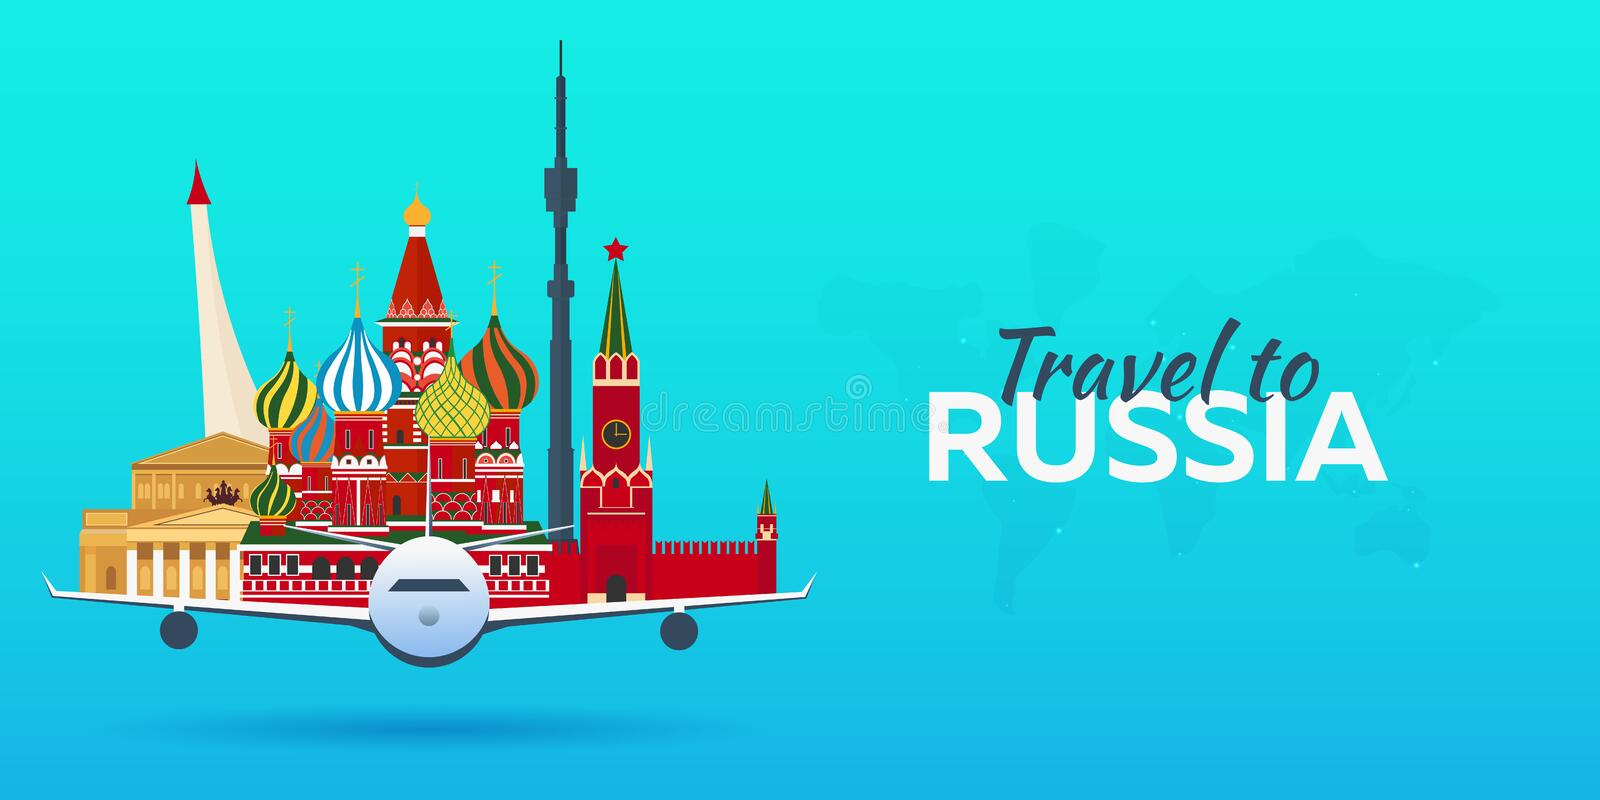 Travel to Russia. Airplane with Attractions. Travel banners. Flat style. vector illustration